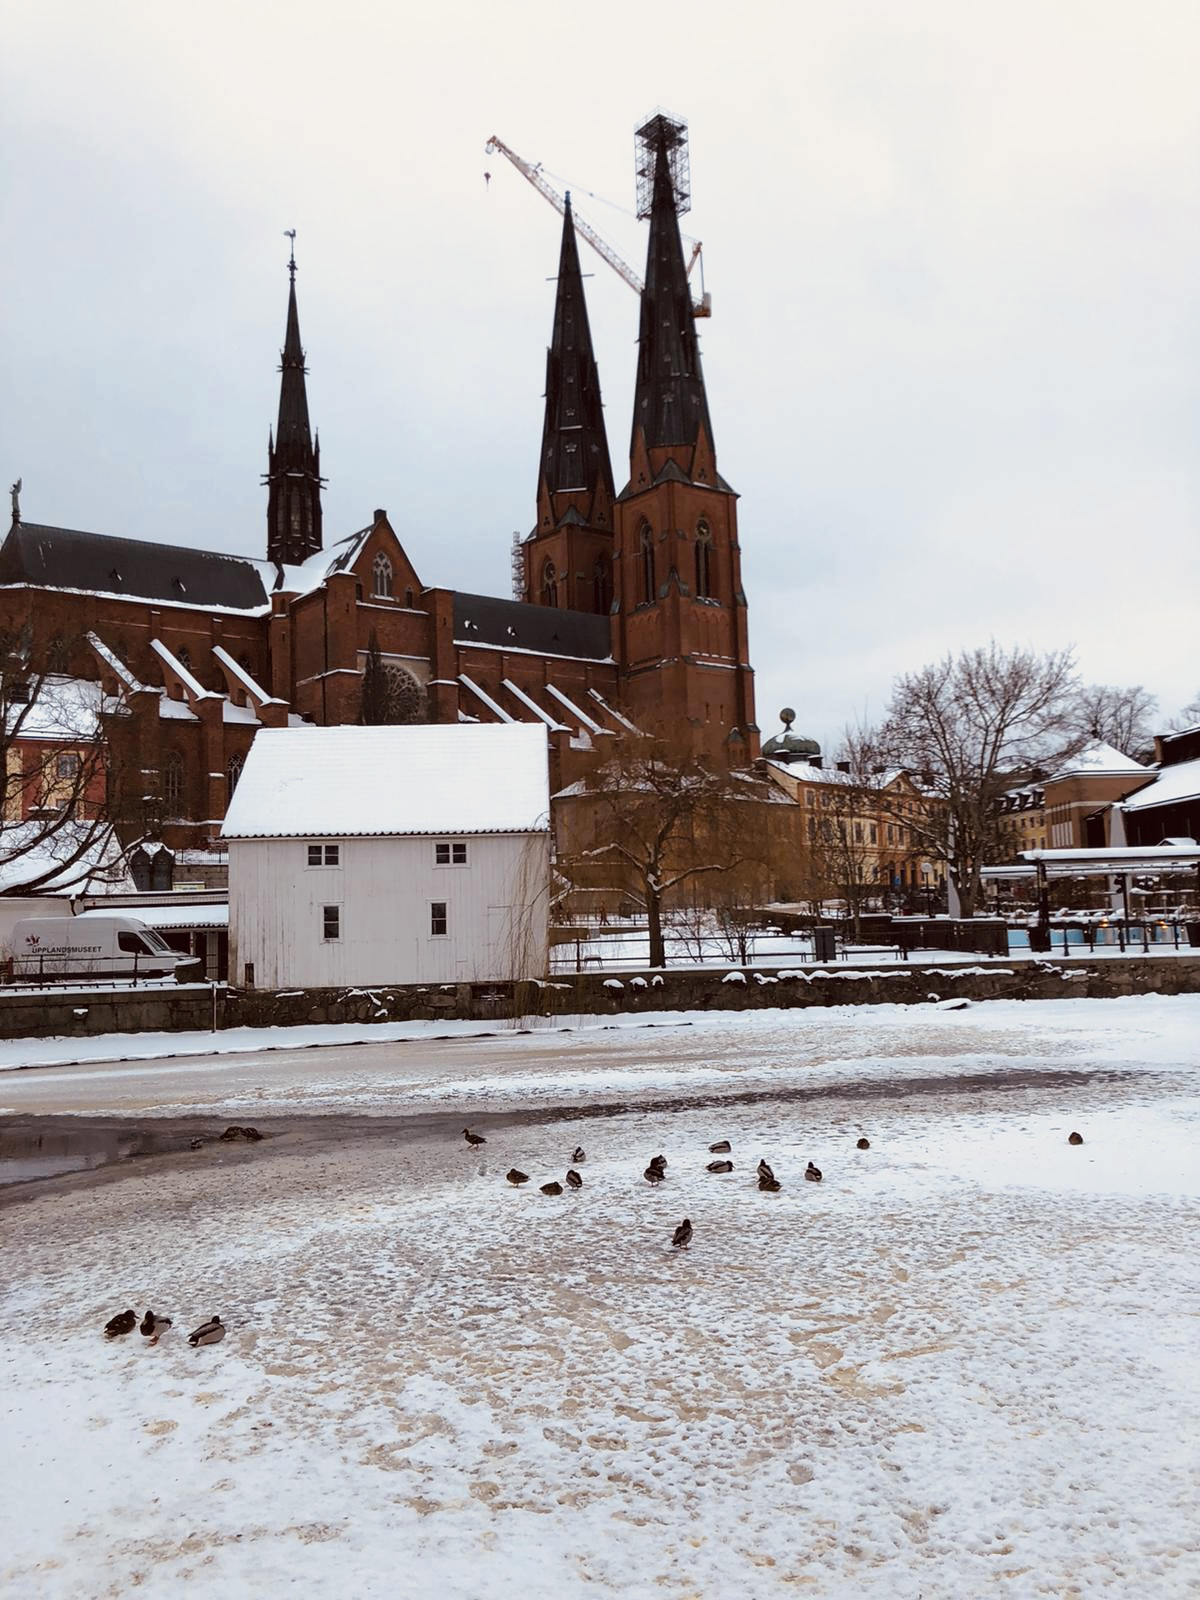 large historic building with spires near small white house in snowy city during daytime